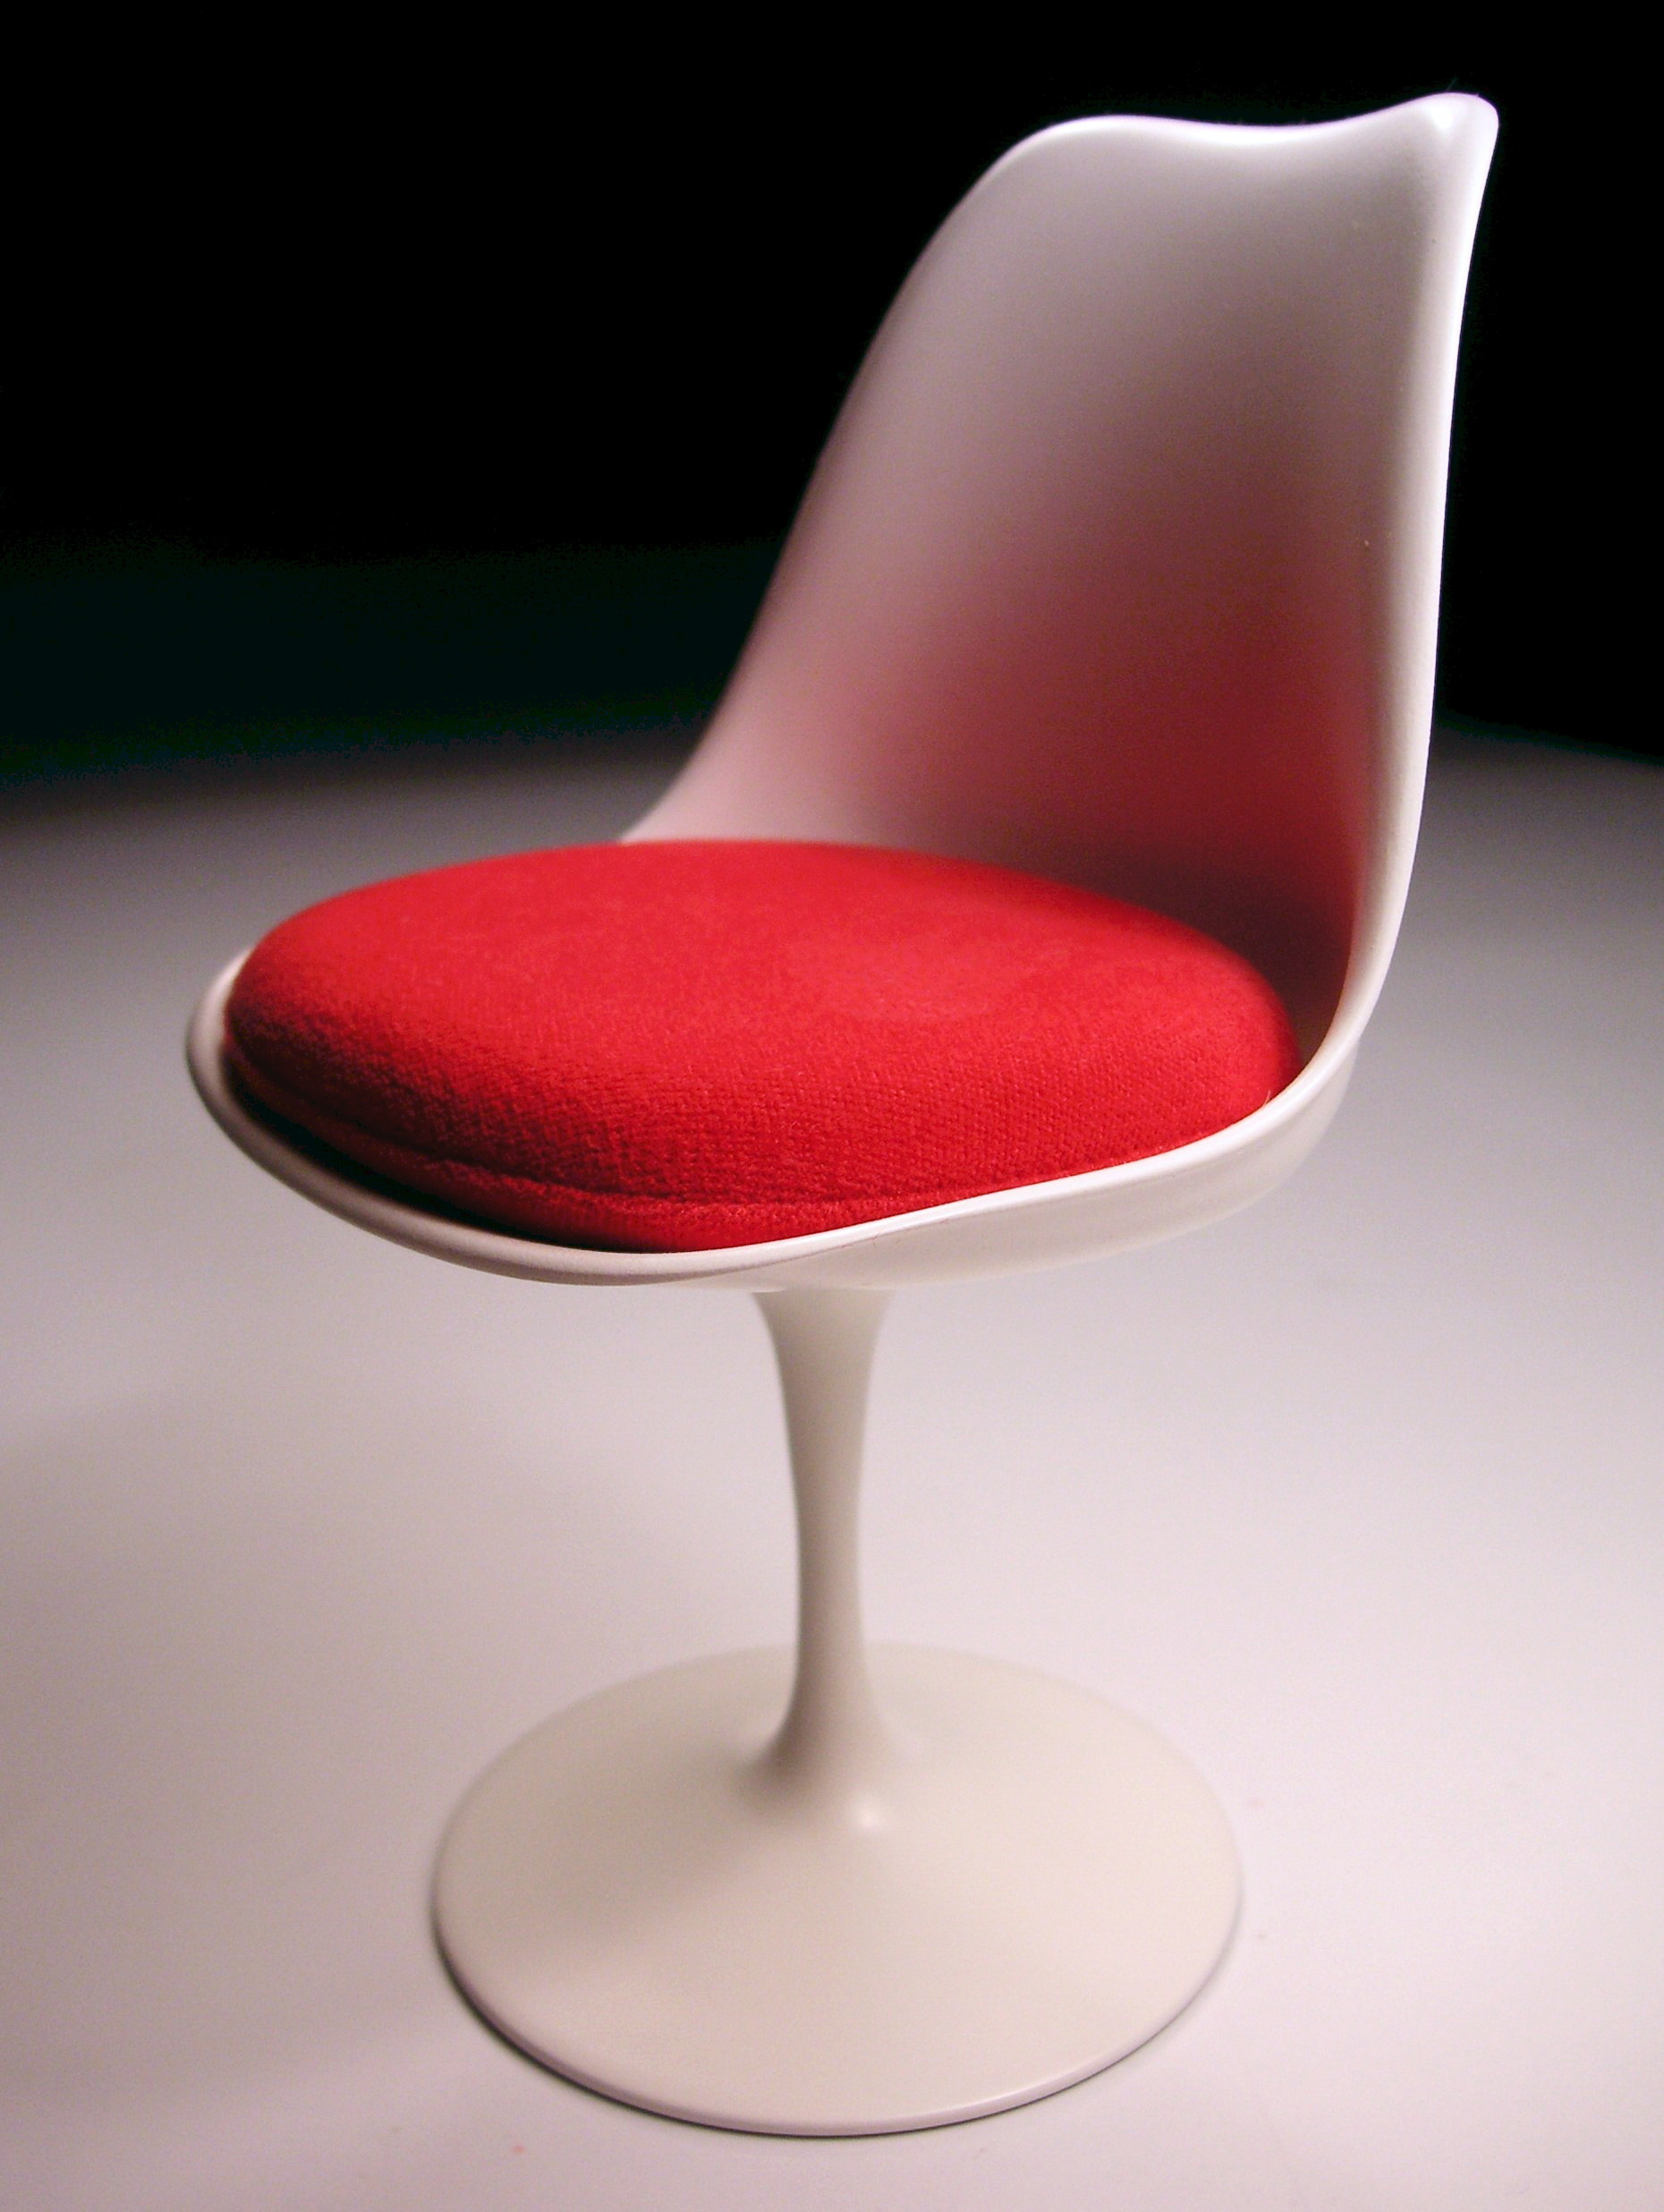 Eero saarinen furniture designs decoration access for Modern chair design